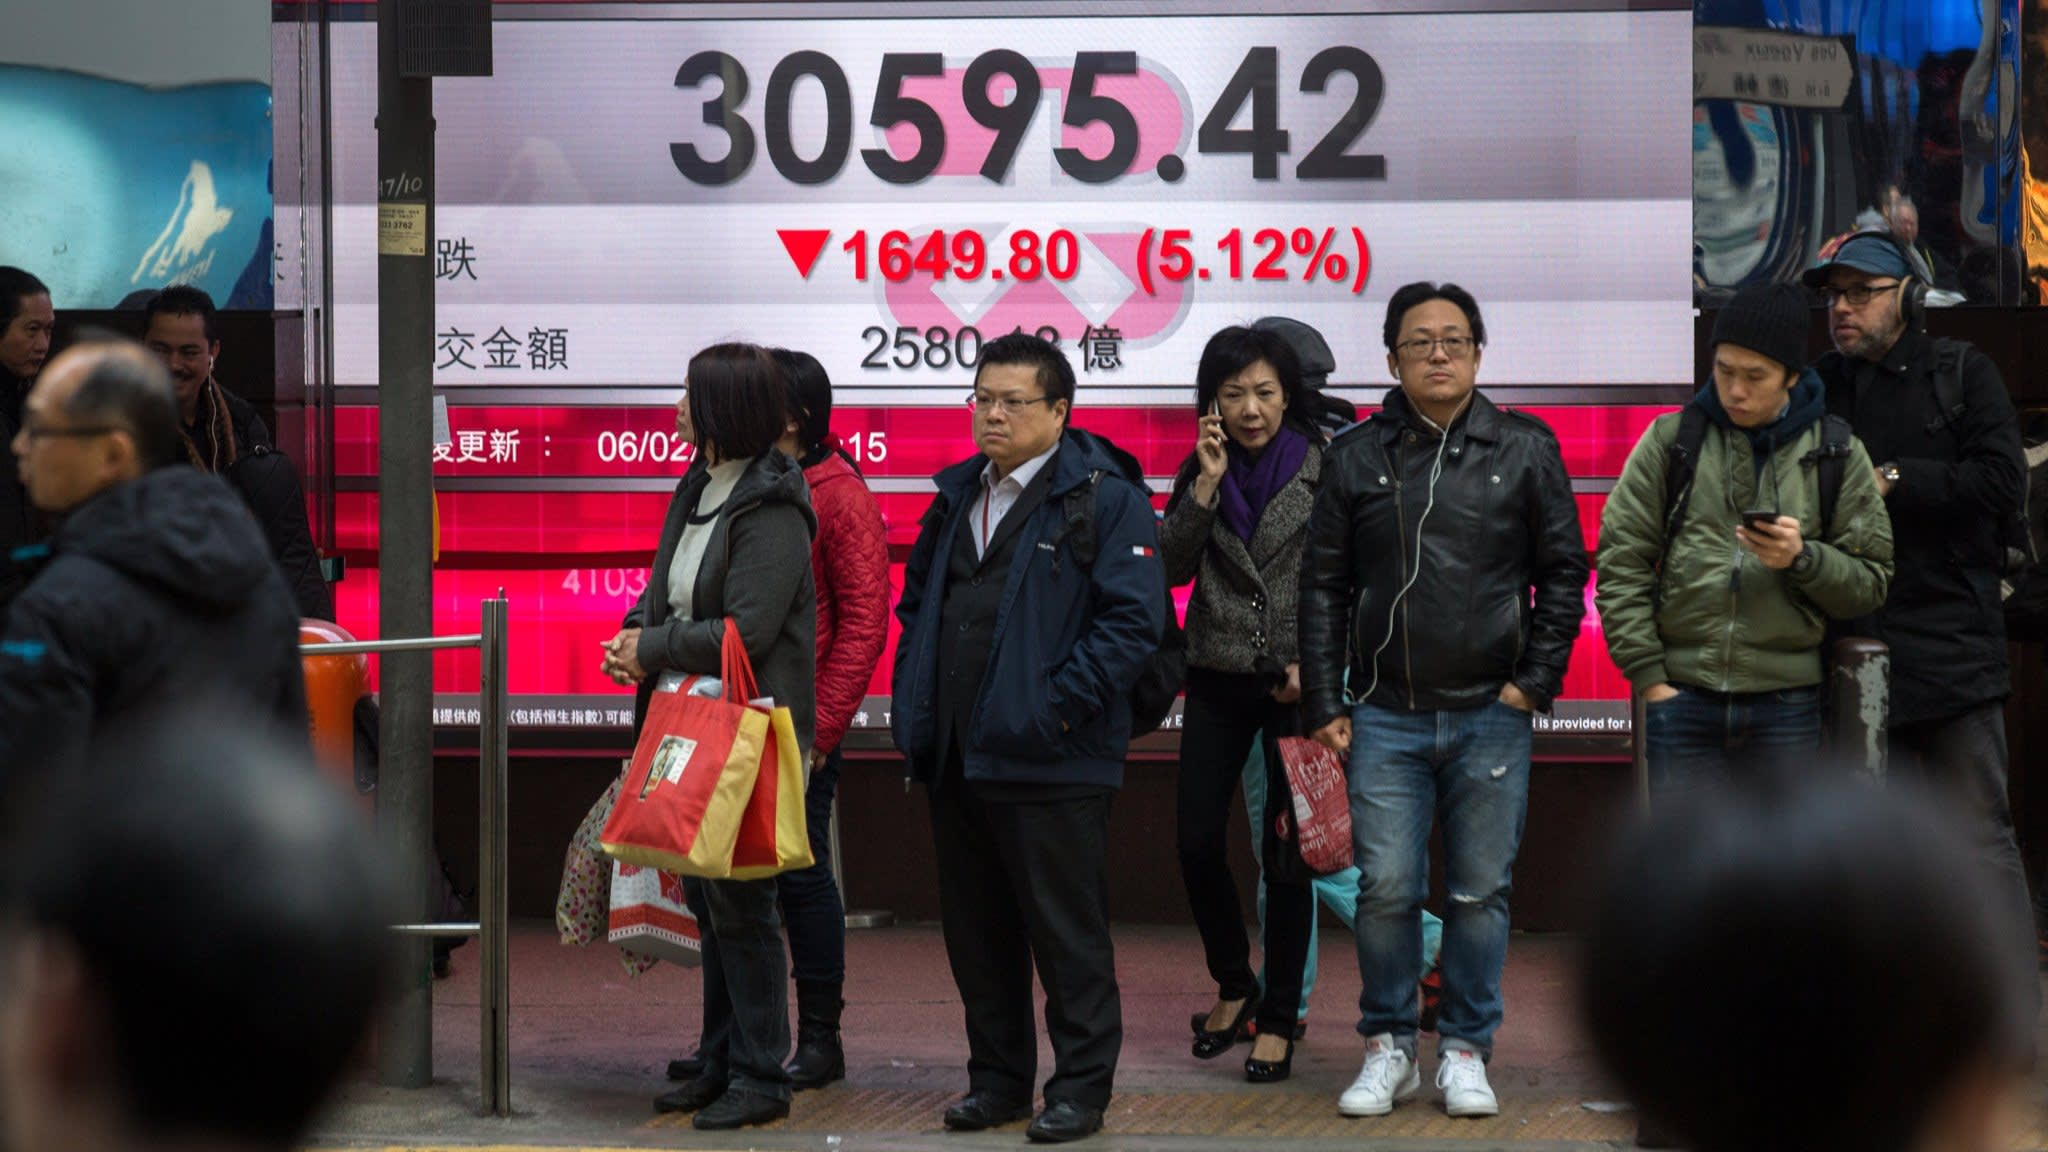 Global stocks sell-off engulfs Asia